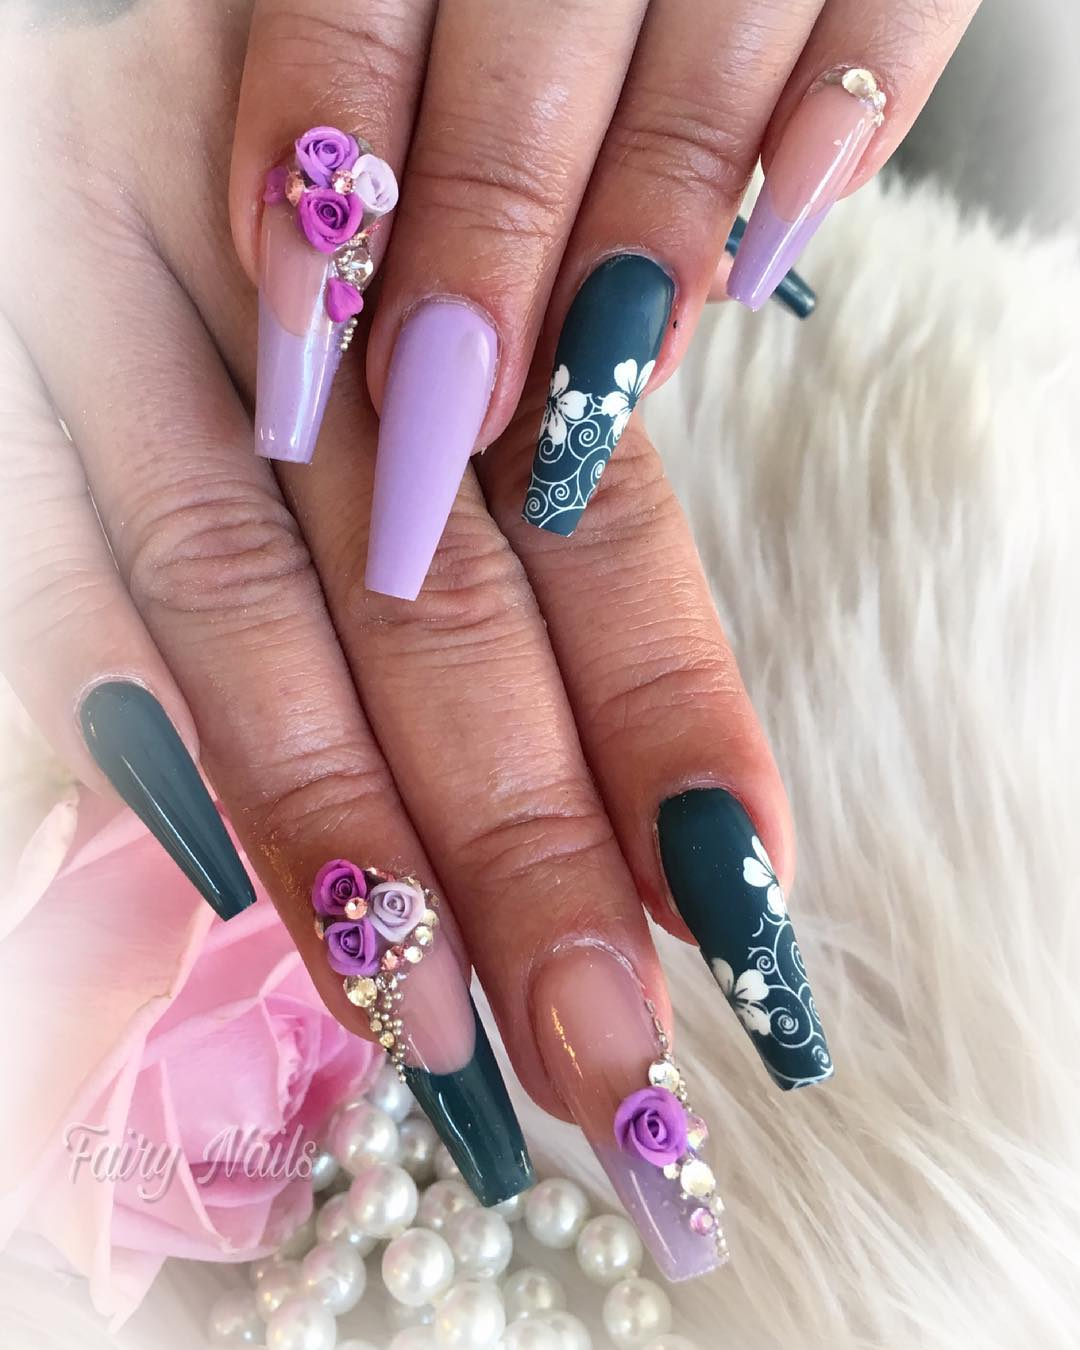 7 3D Flower Nail Art Designs